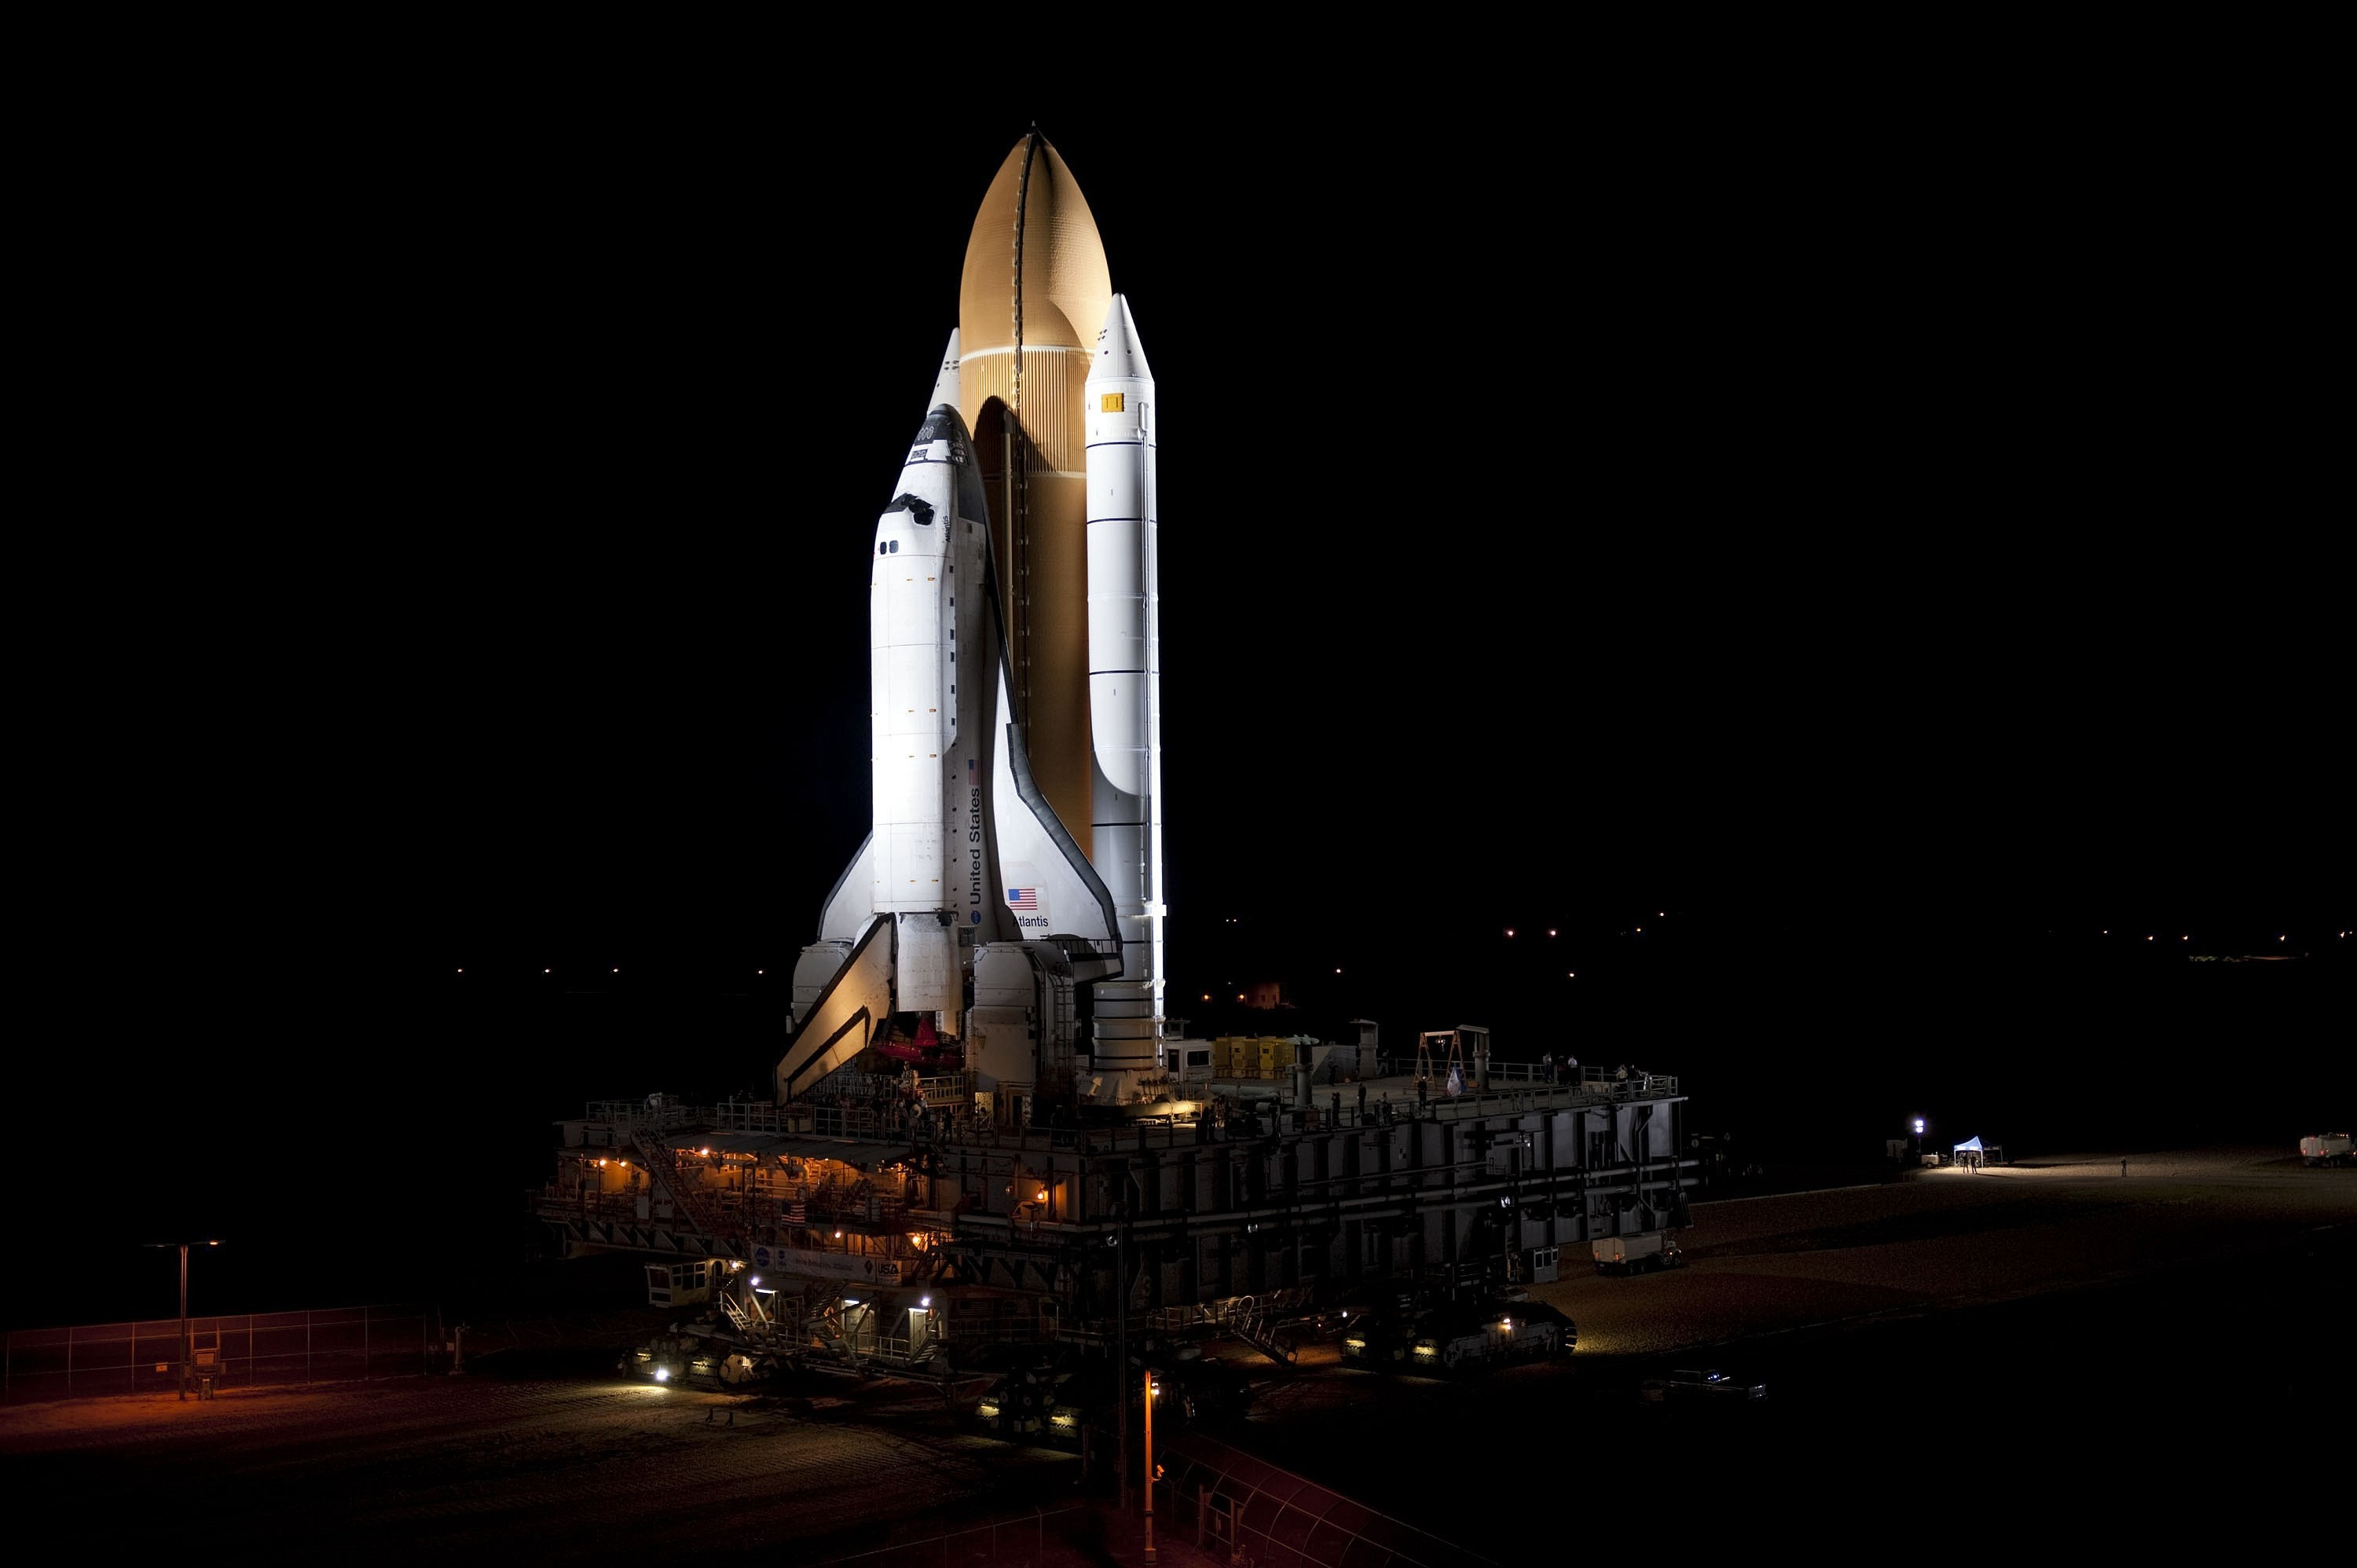 Space shuttle nasa wallpaper 10365 pc - Nasa space wallpaper 1920x1080 ...